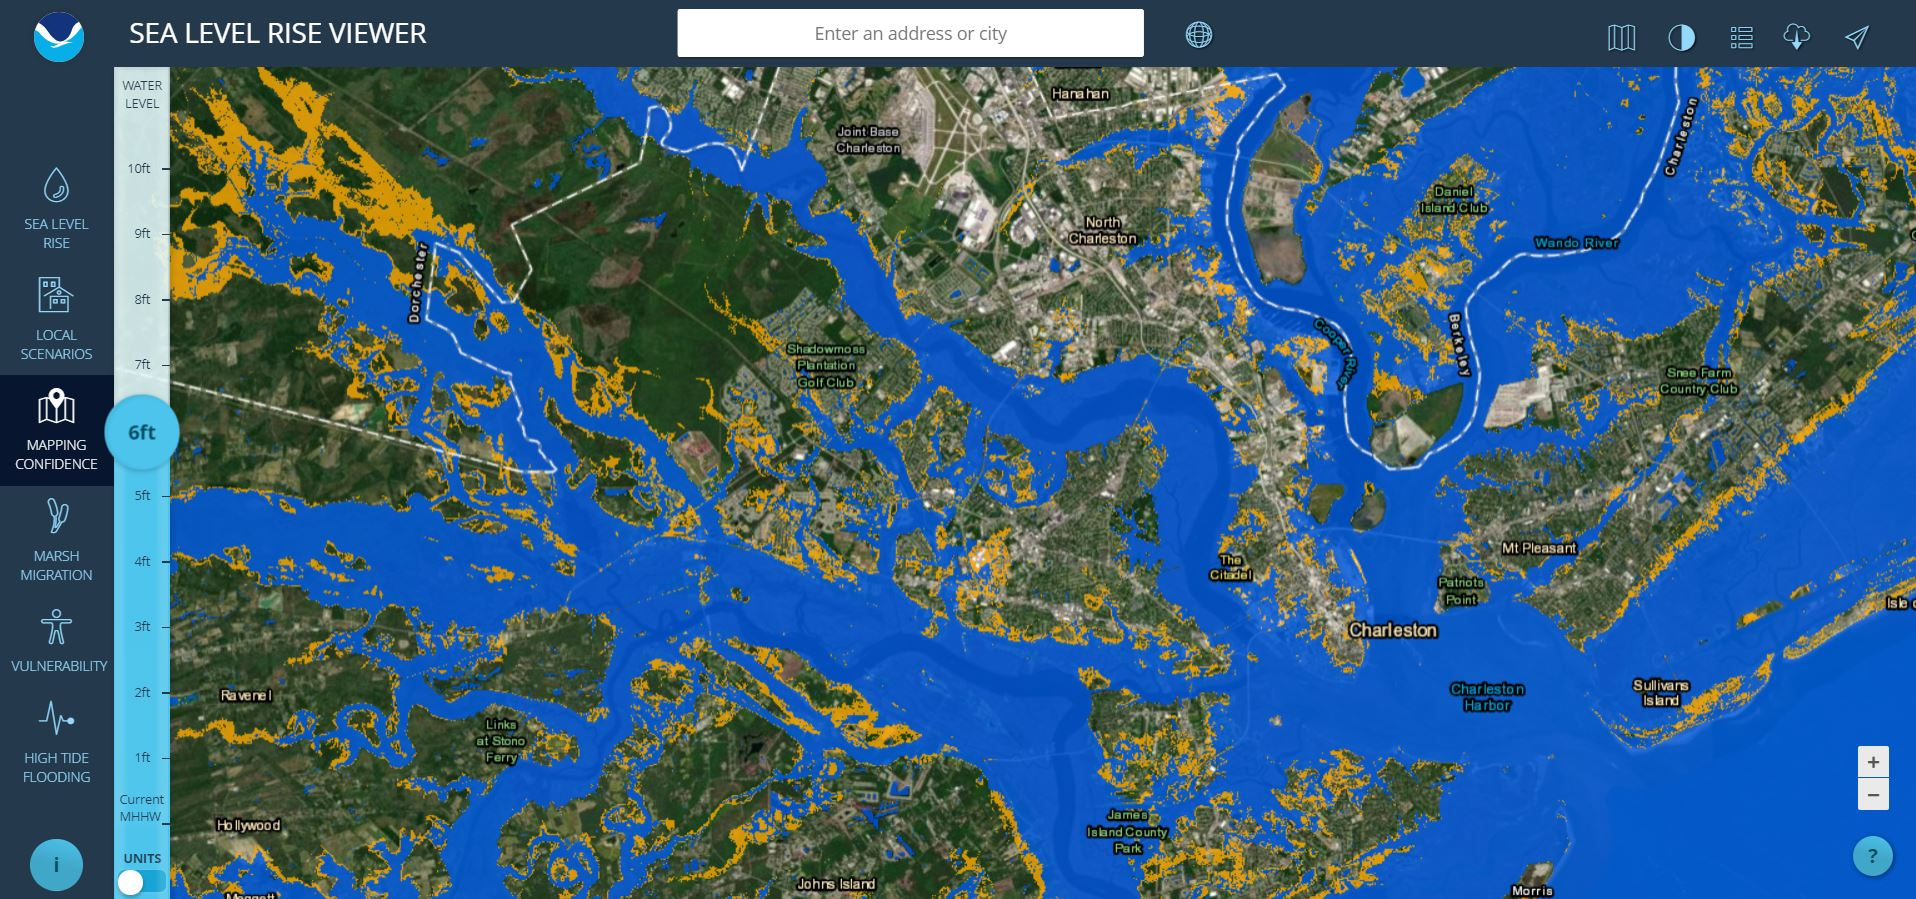 Rising Sea Levels Map Sea Level Rise Viewer